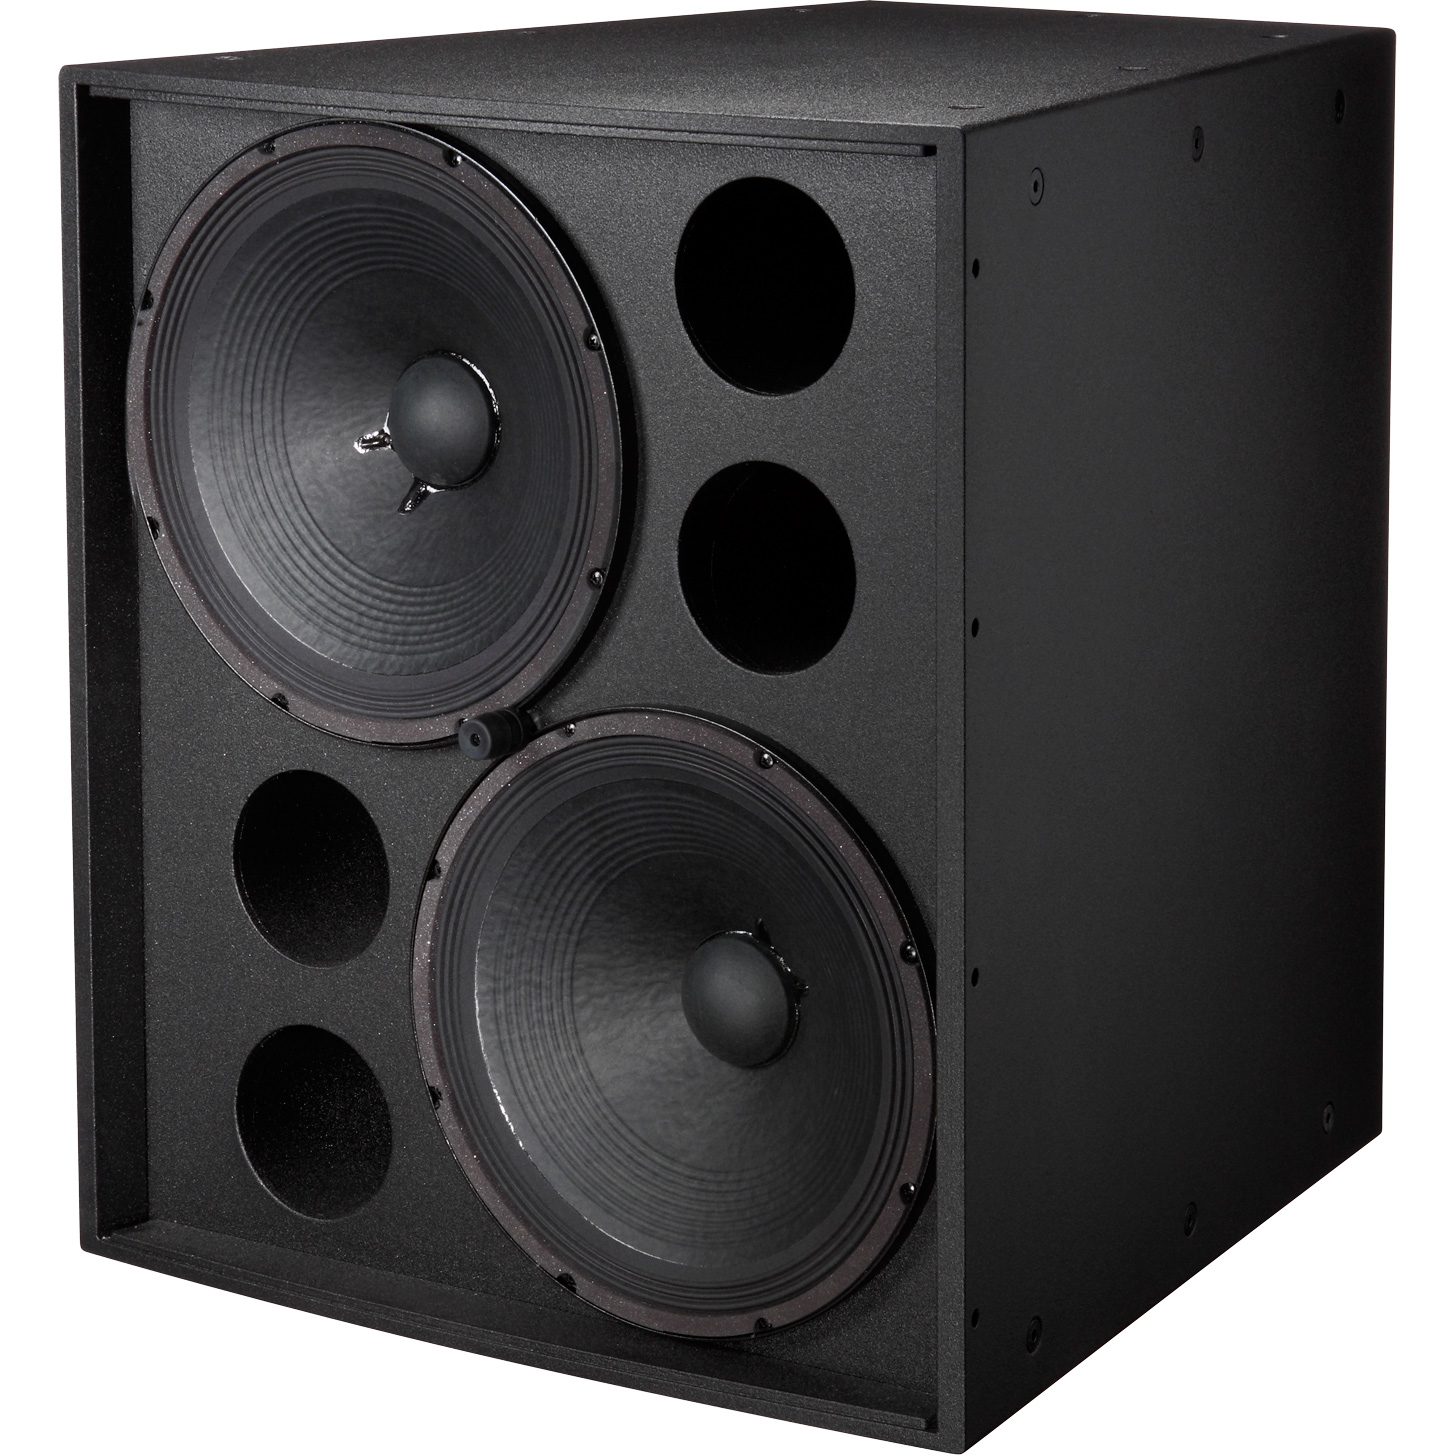 Electro Voice Evf 2151d Blk Dual 15 Inch Subwoofer System